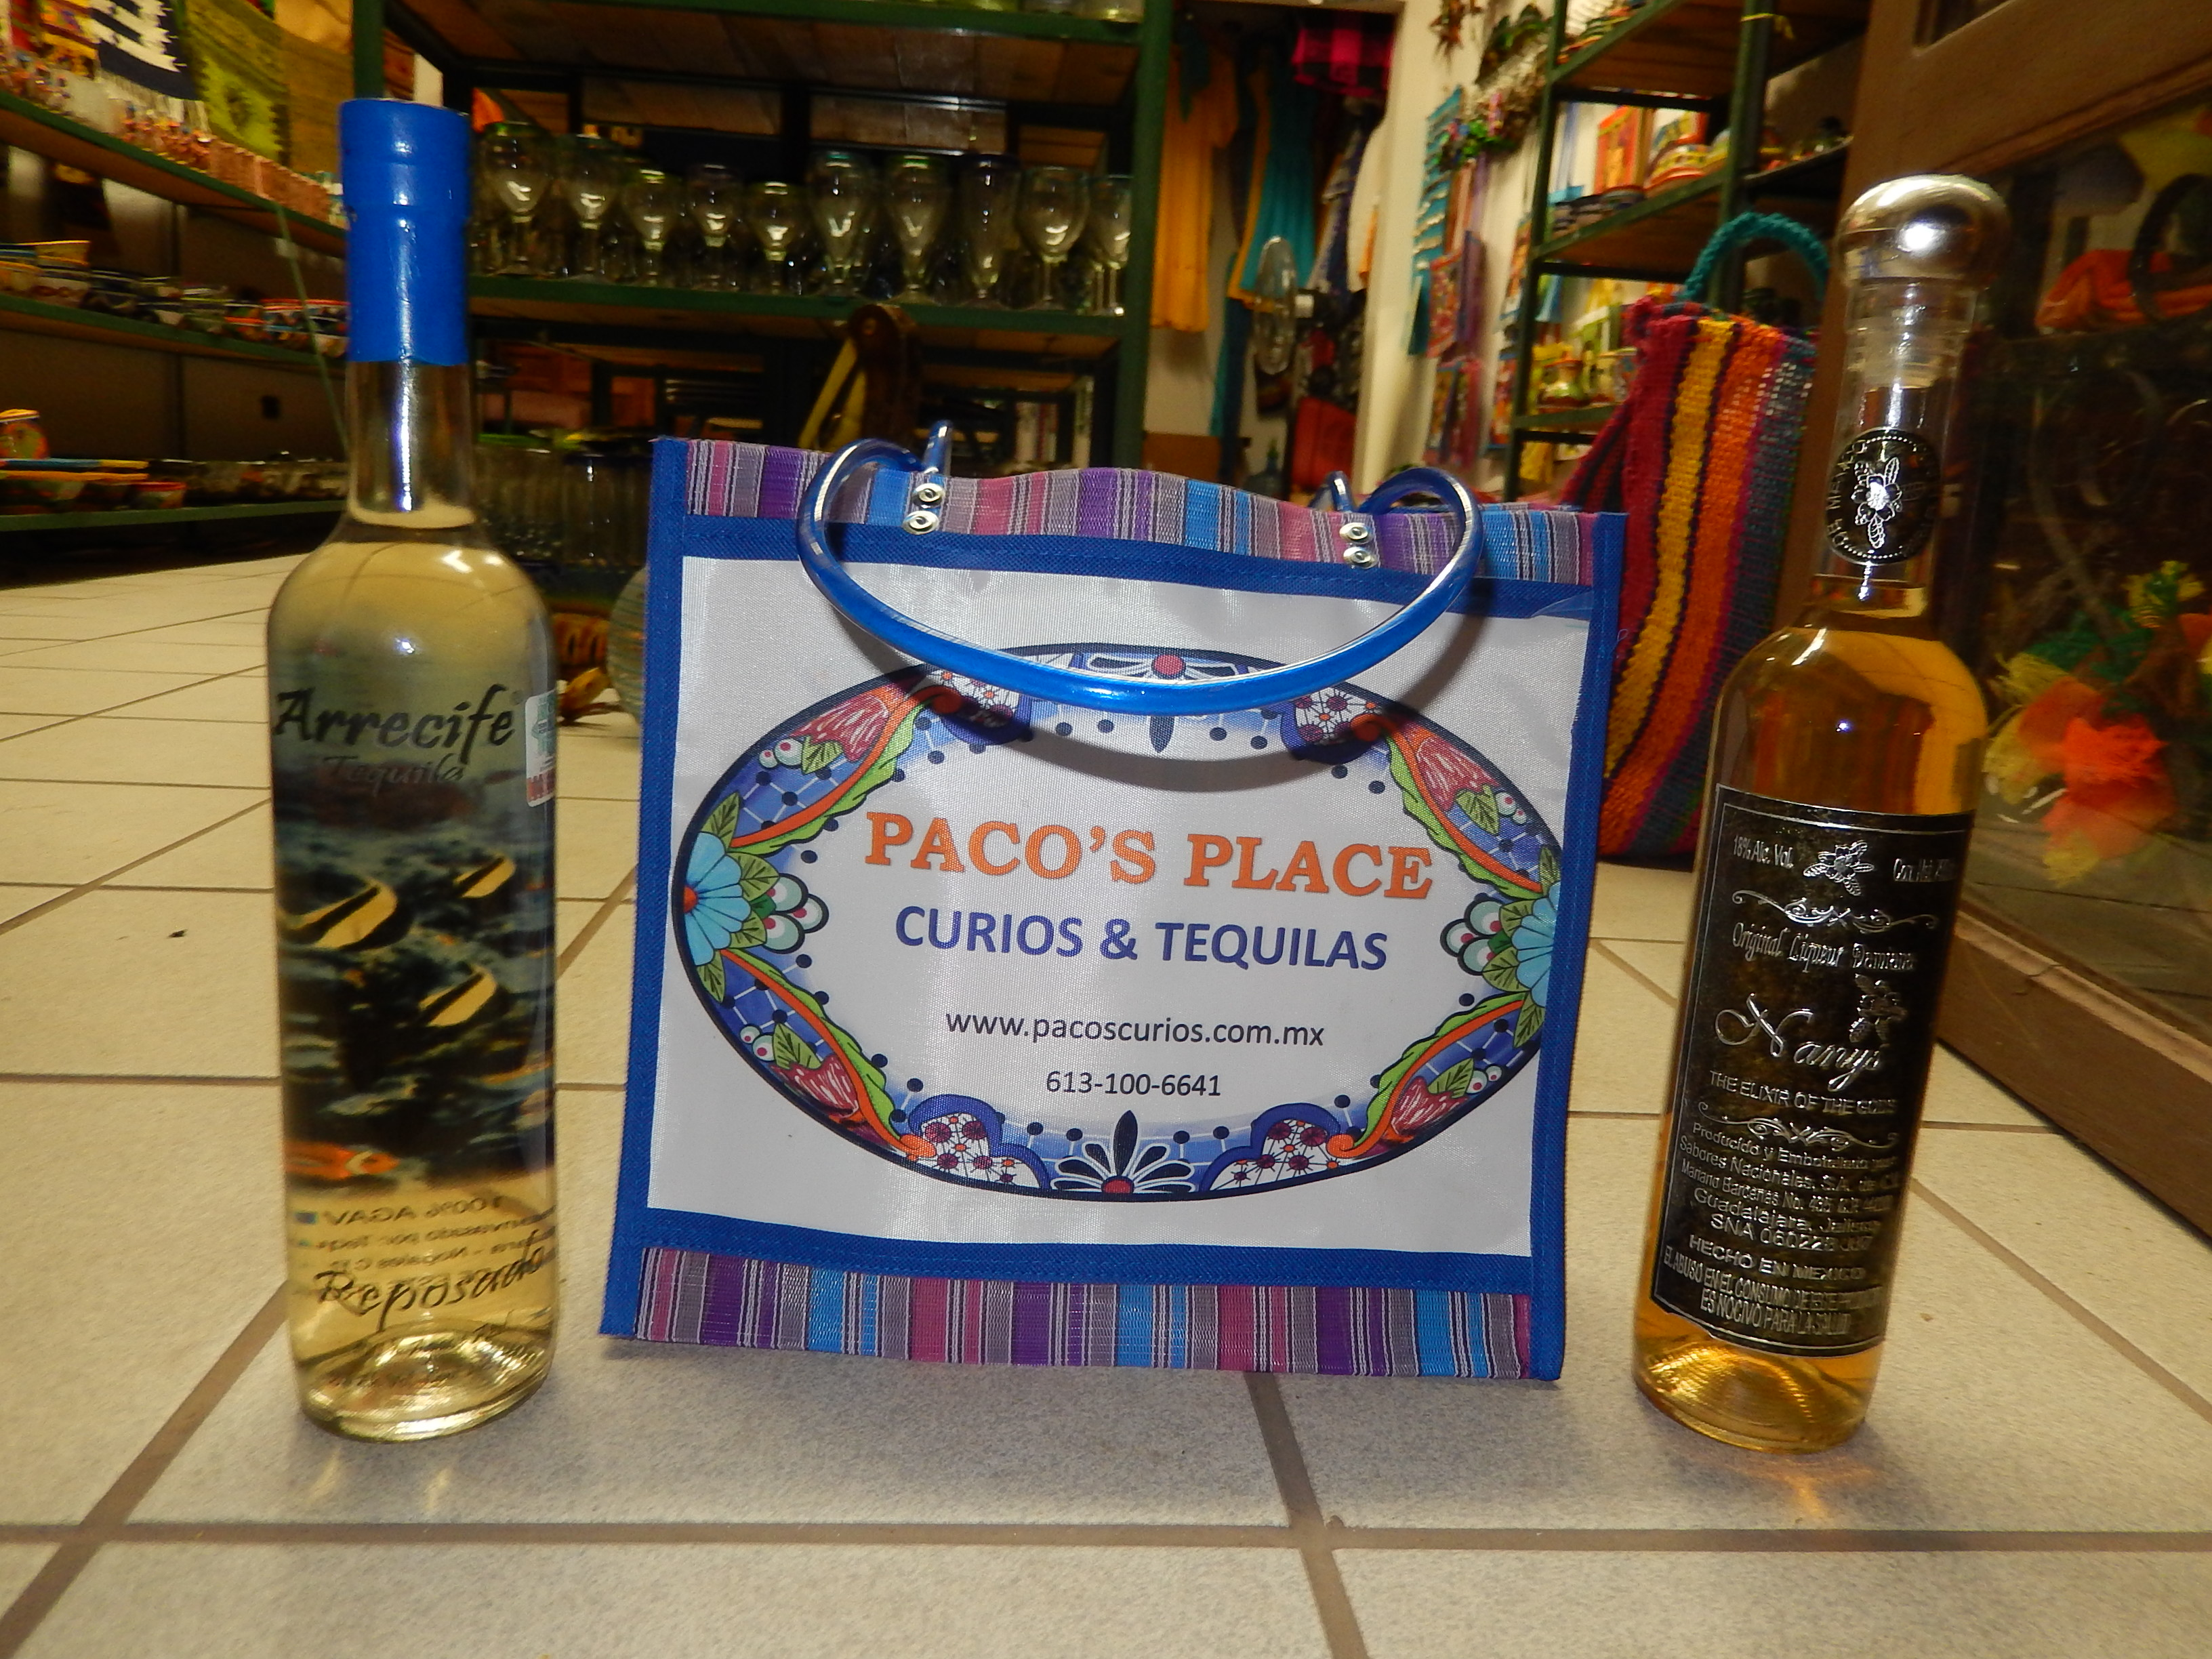 Paco's Place bag w/ tequila purchase